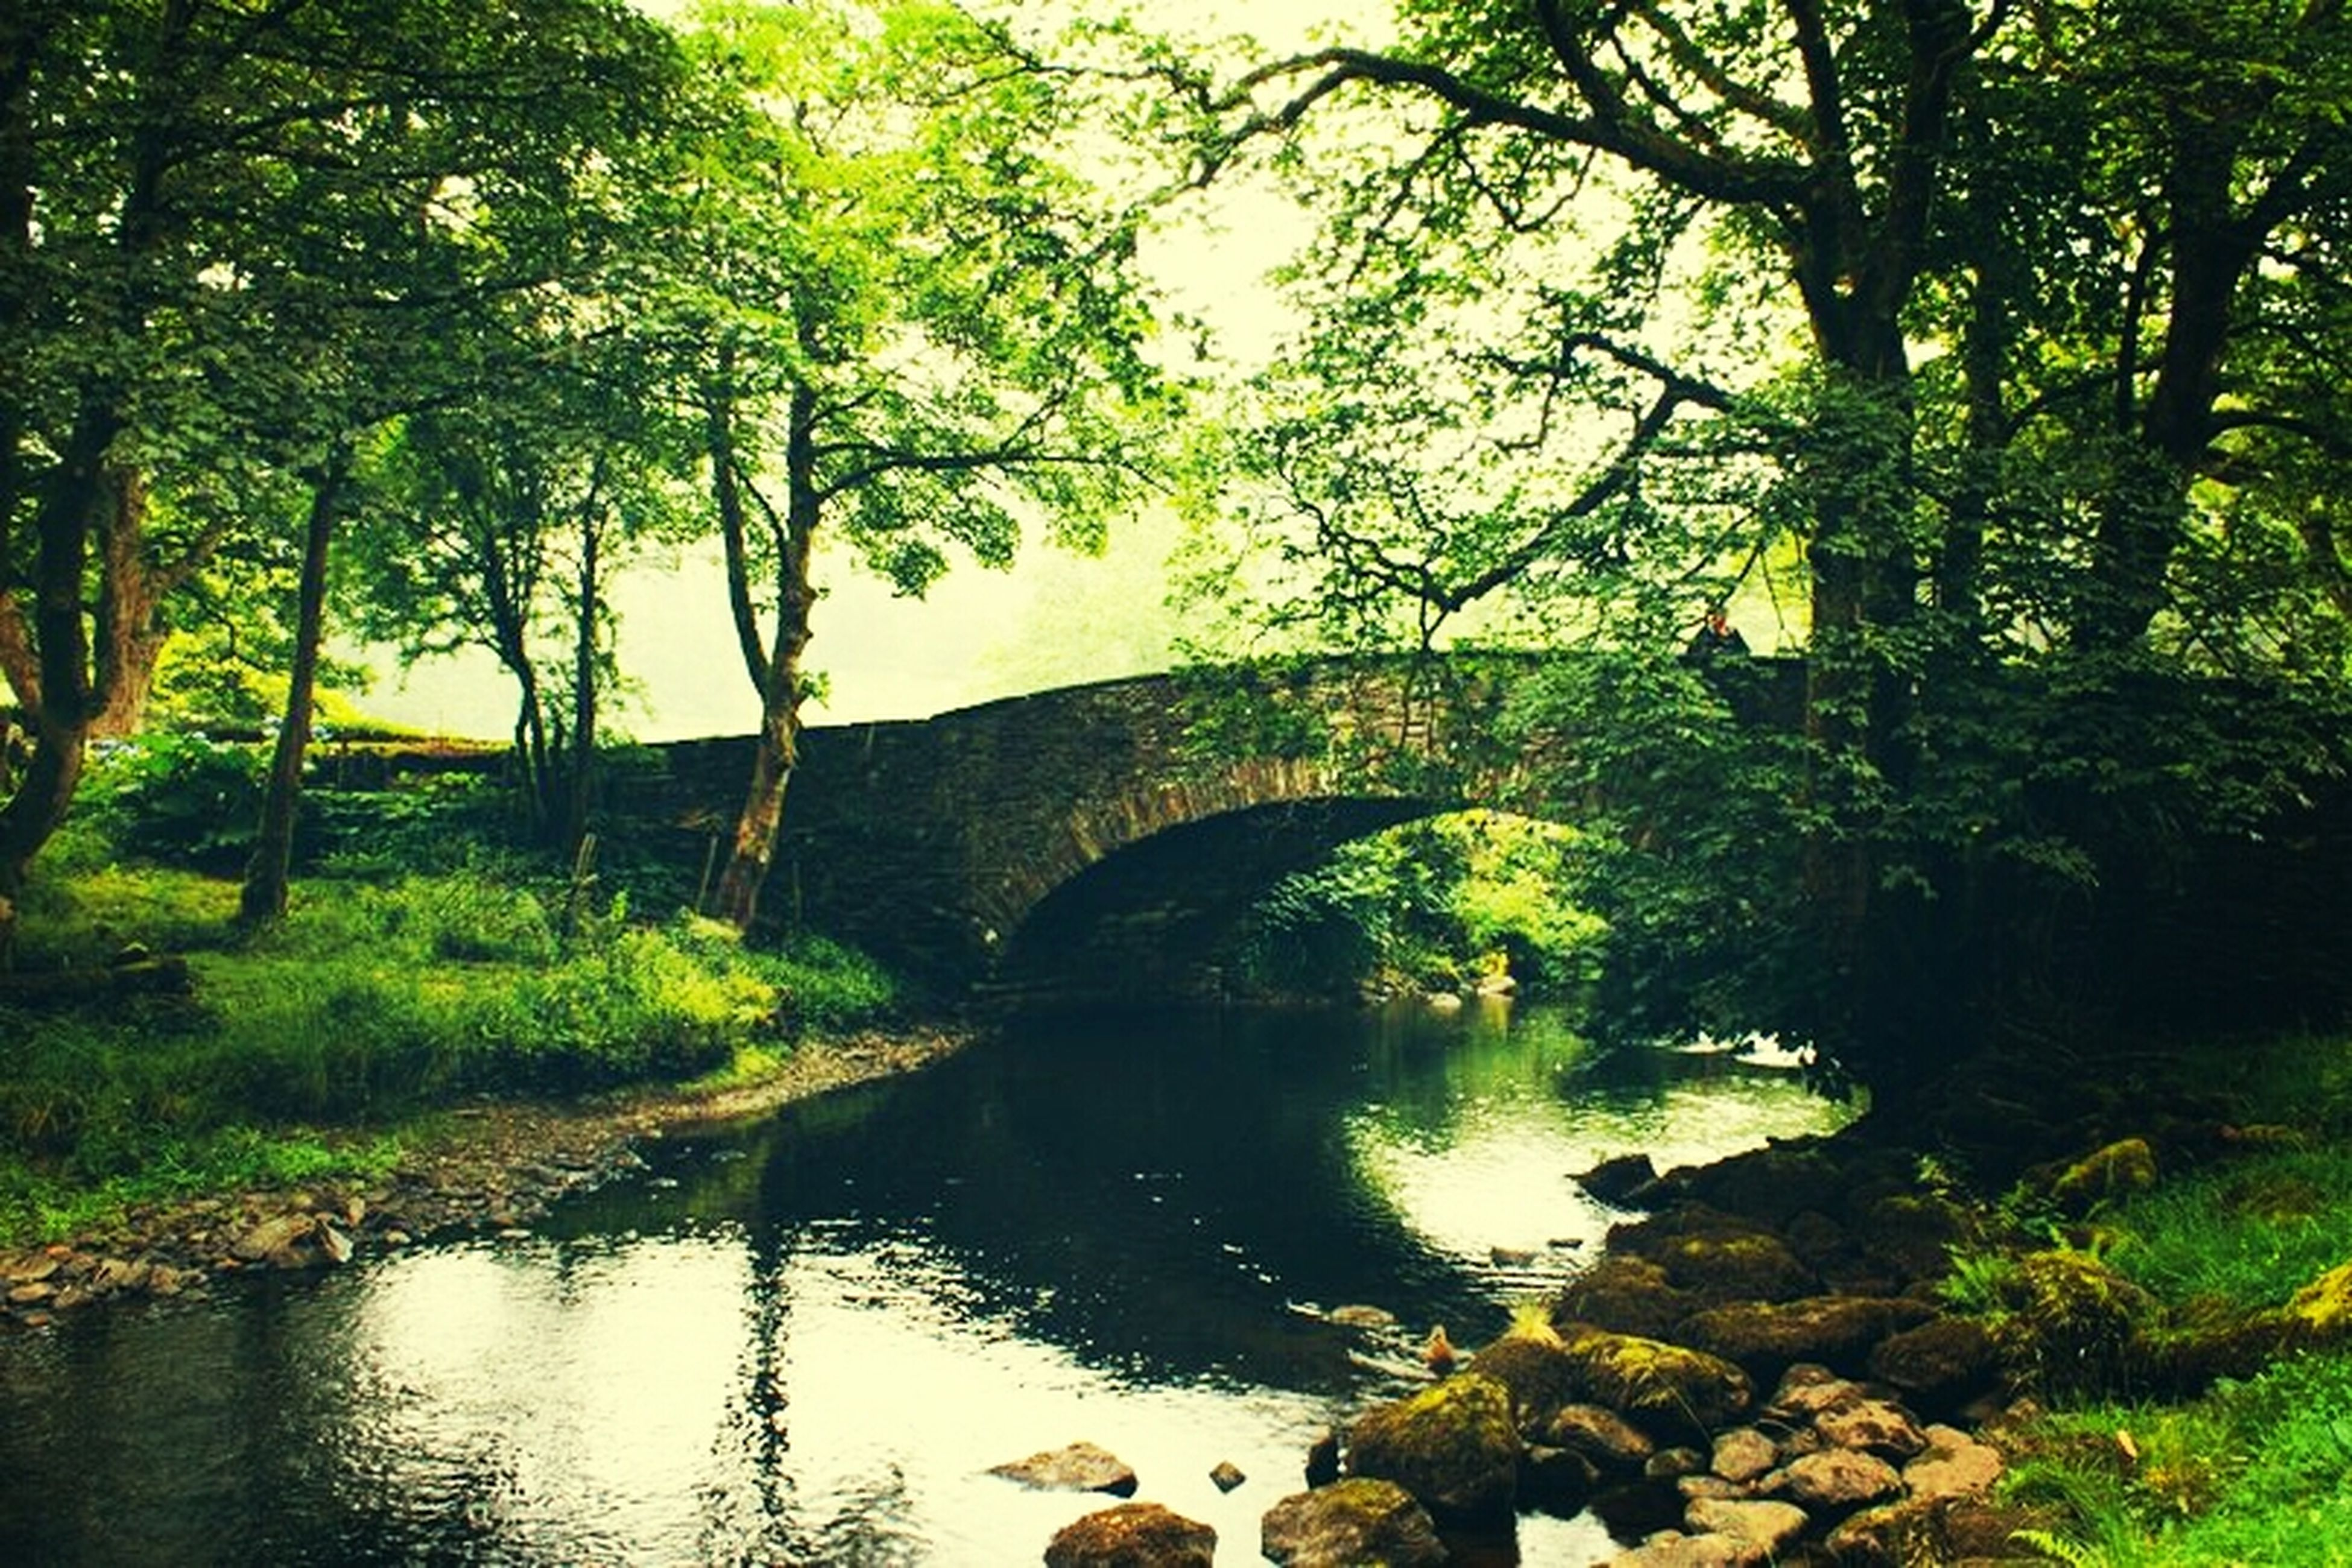 tree, water, built structure, architecture, bridge - man made structure, reflection, connection, river, animal themes, arch, arch bridge, tranquility, nature, bridge, plant, lake, growth, tranquil scene, green color, bird